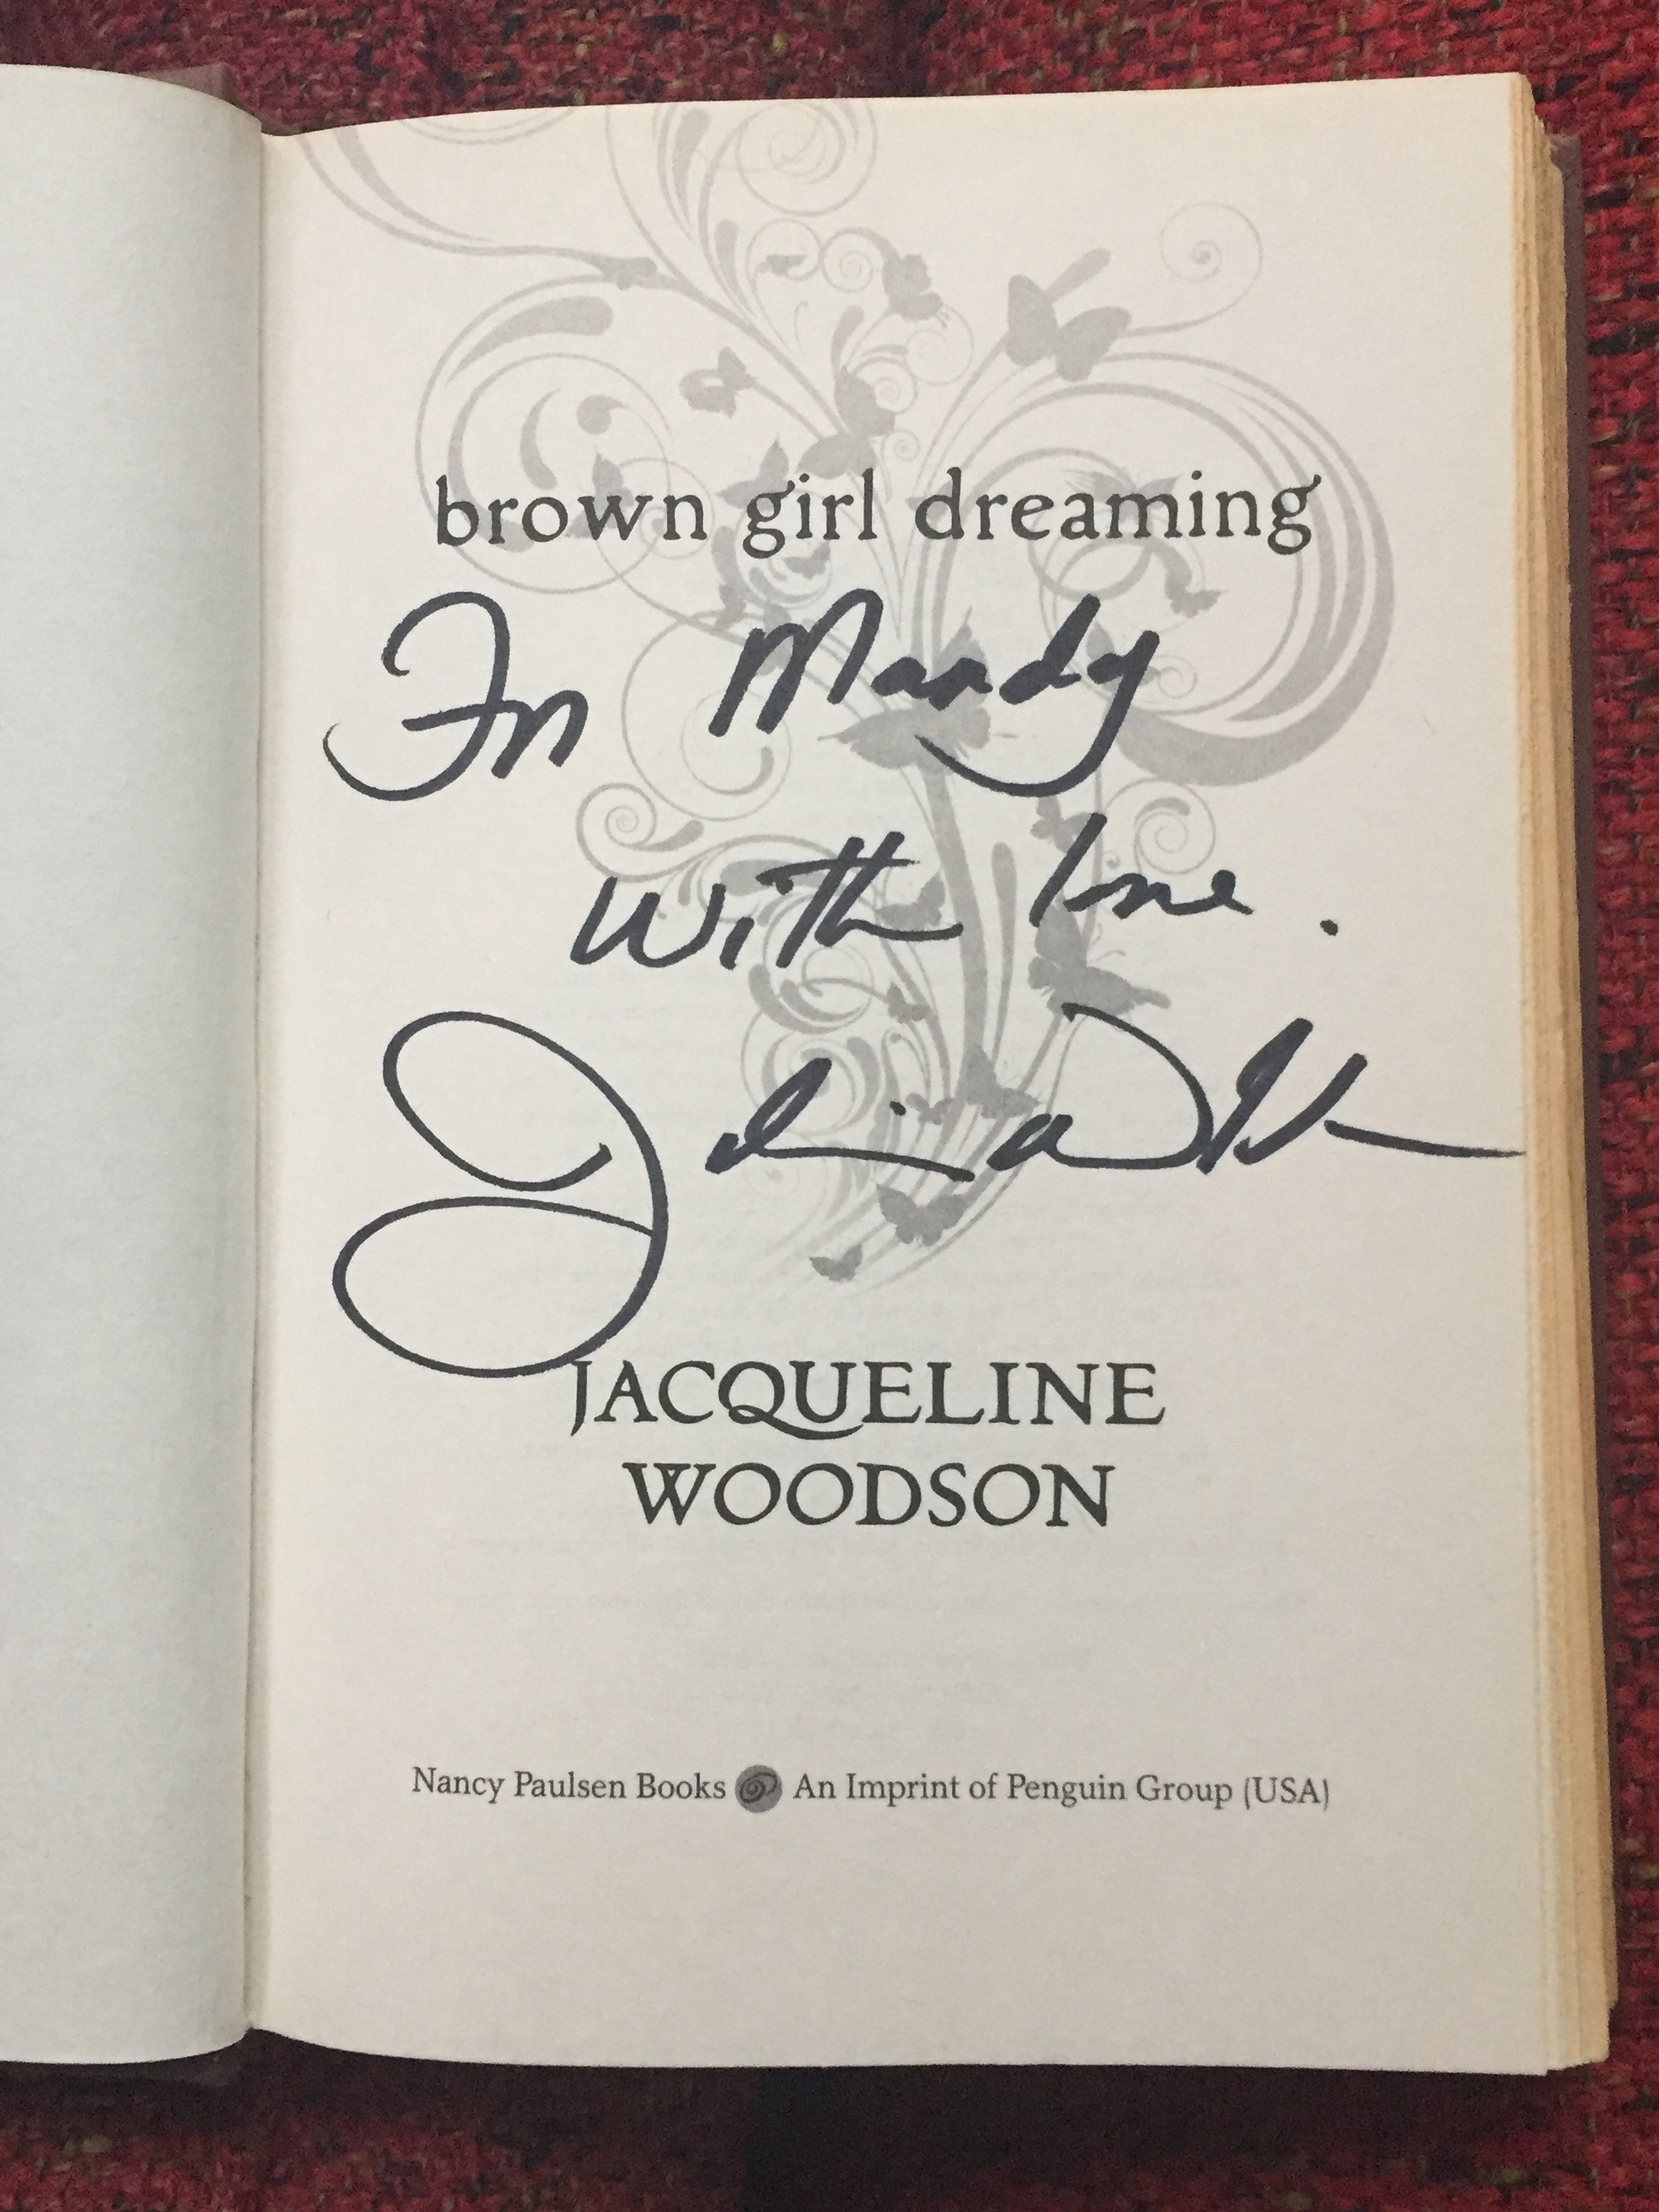 """[image description: My signed copy of Brown Girl Dreaming. The photo is a close up of the title page where it has the title and author. The signed part says """"For Mandy / With love / Jacqueline Woodson""""]"""